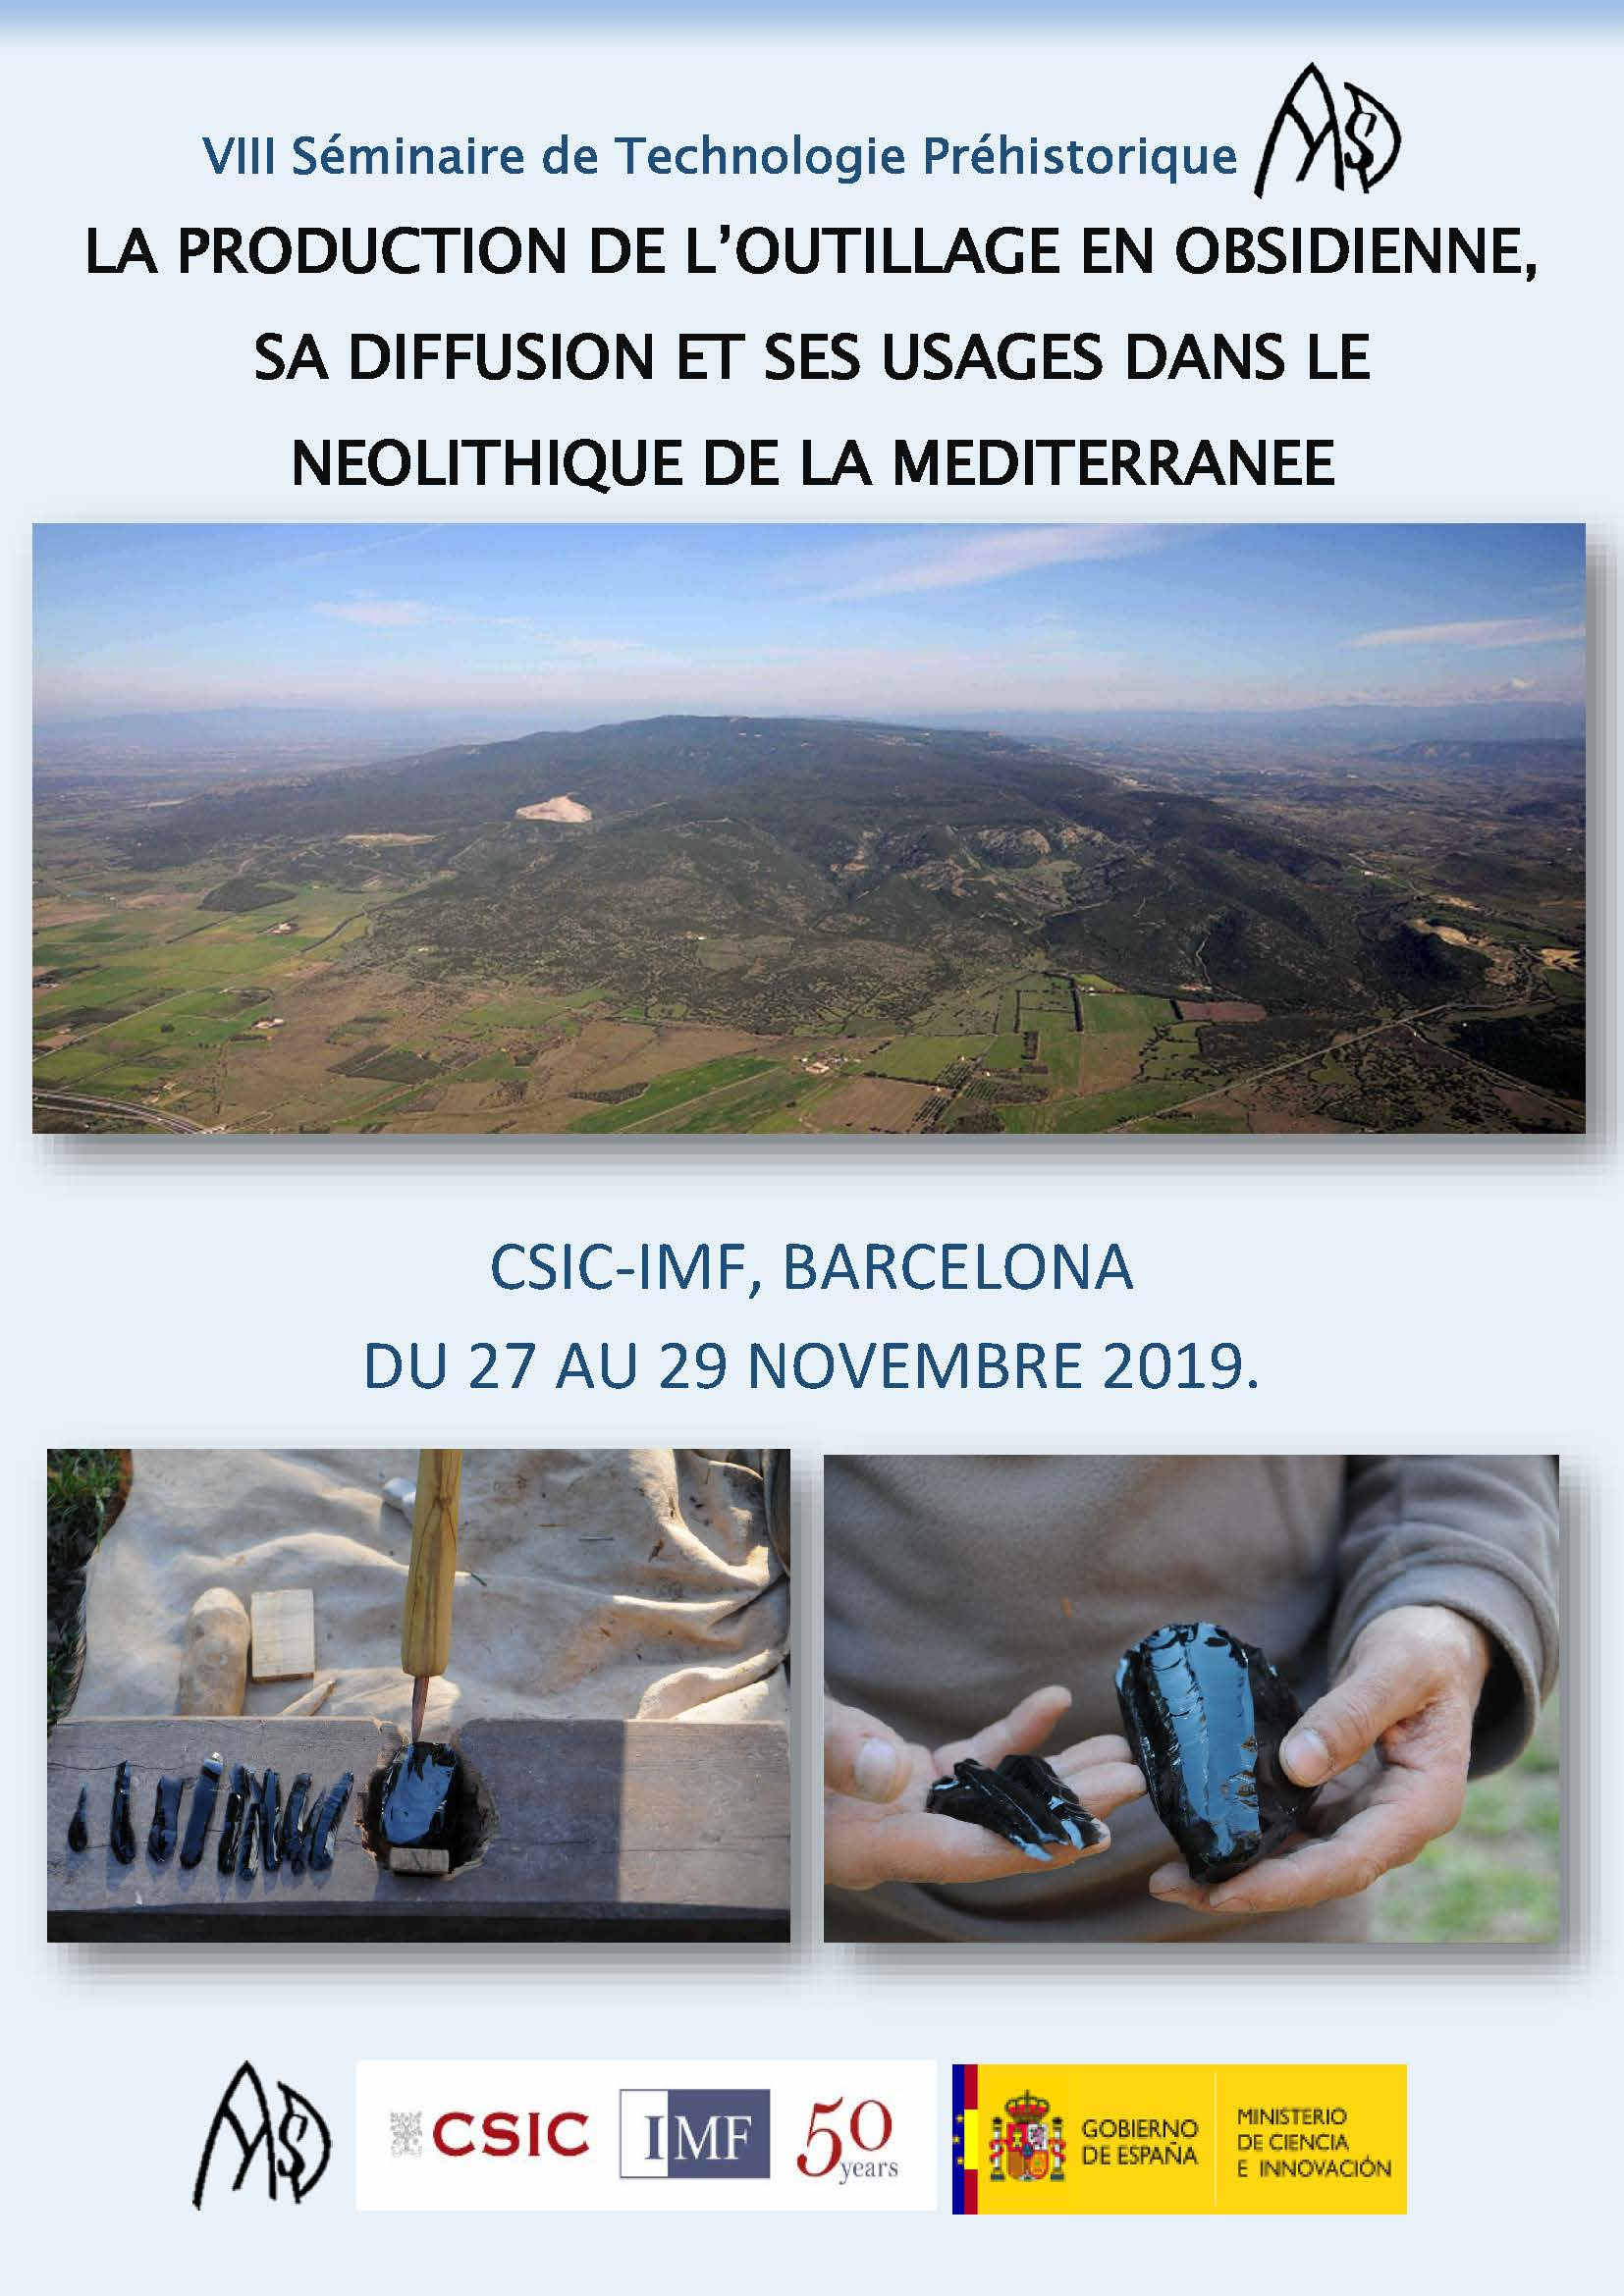 A note of reminder about our next Prehistoric Technology Seminar  (November 27-29, 2019)